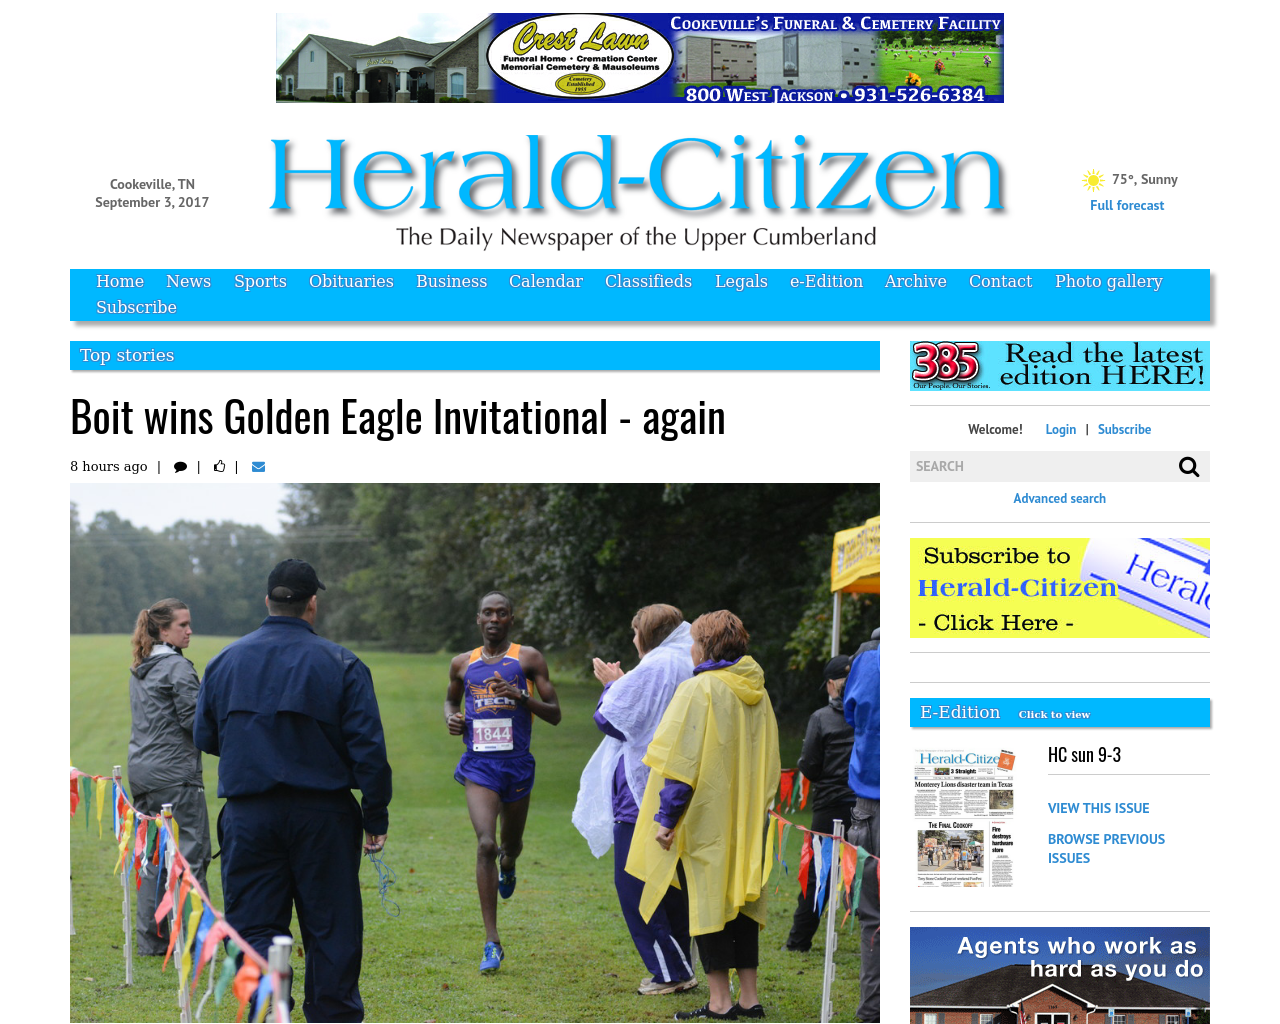 Herald-Citizen-Advertising-Reviews-Pricing